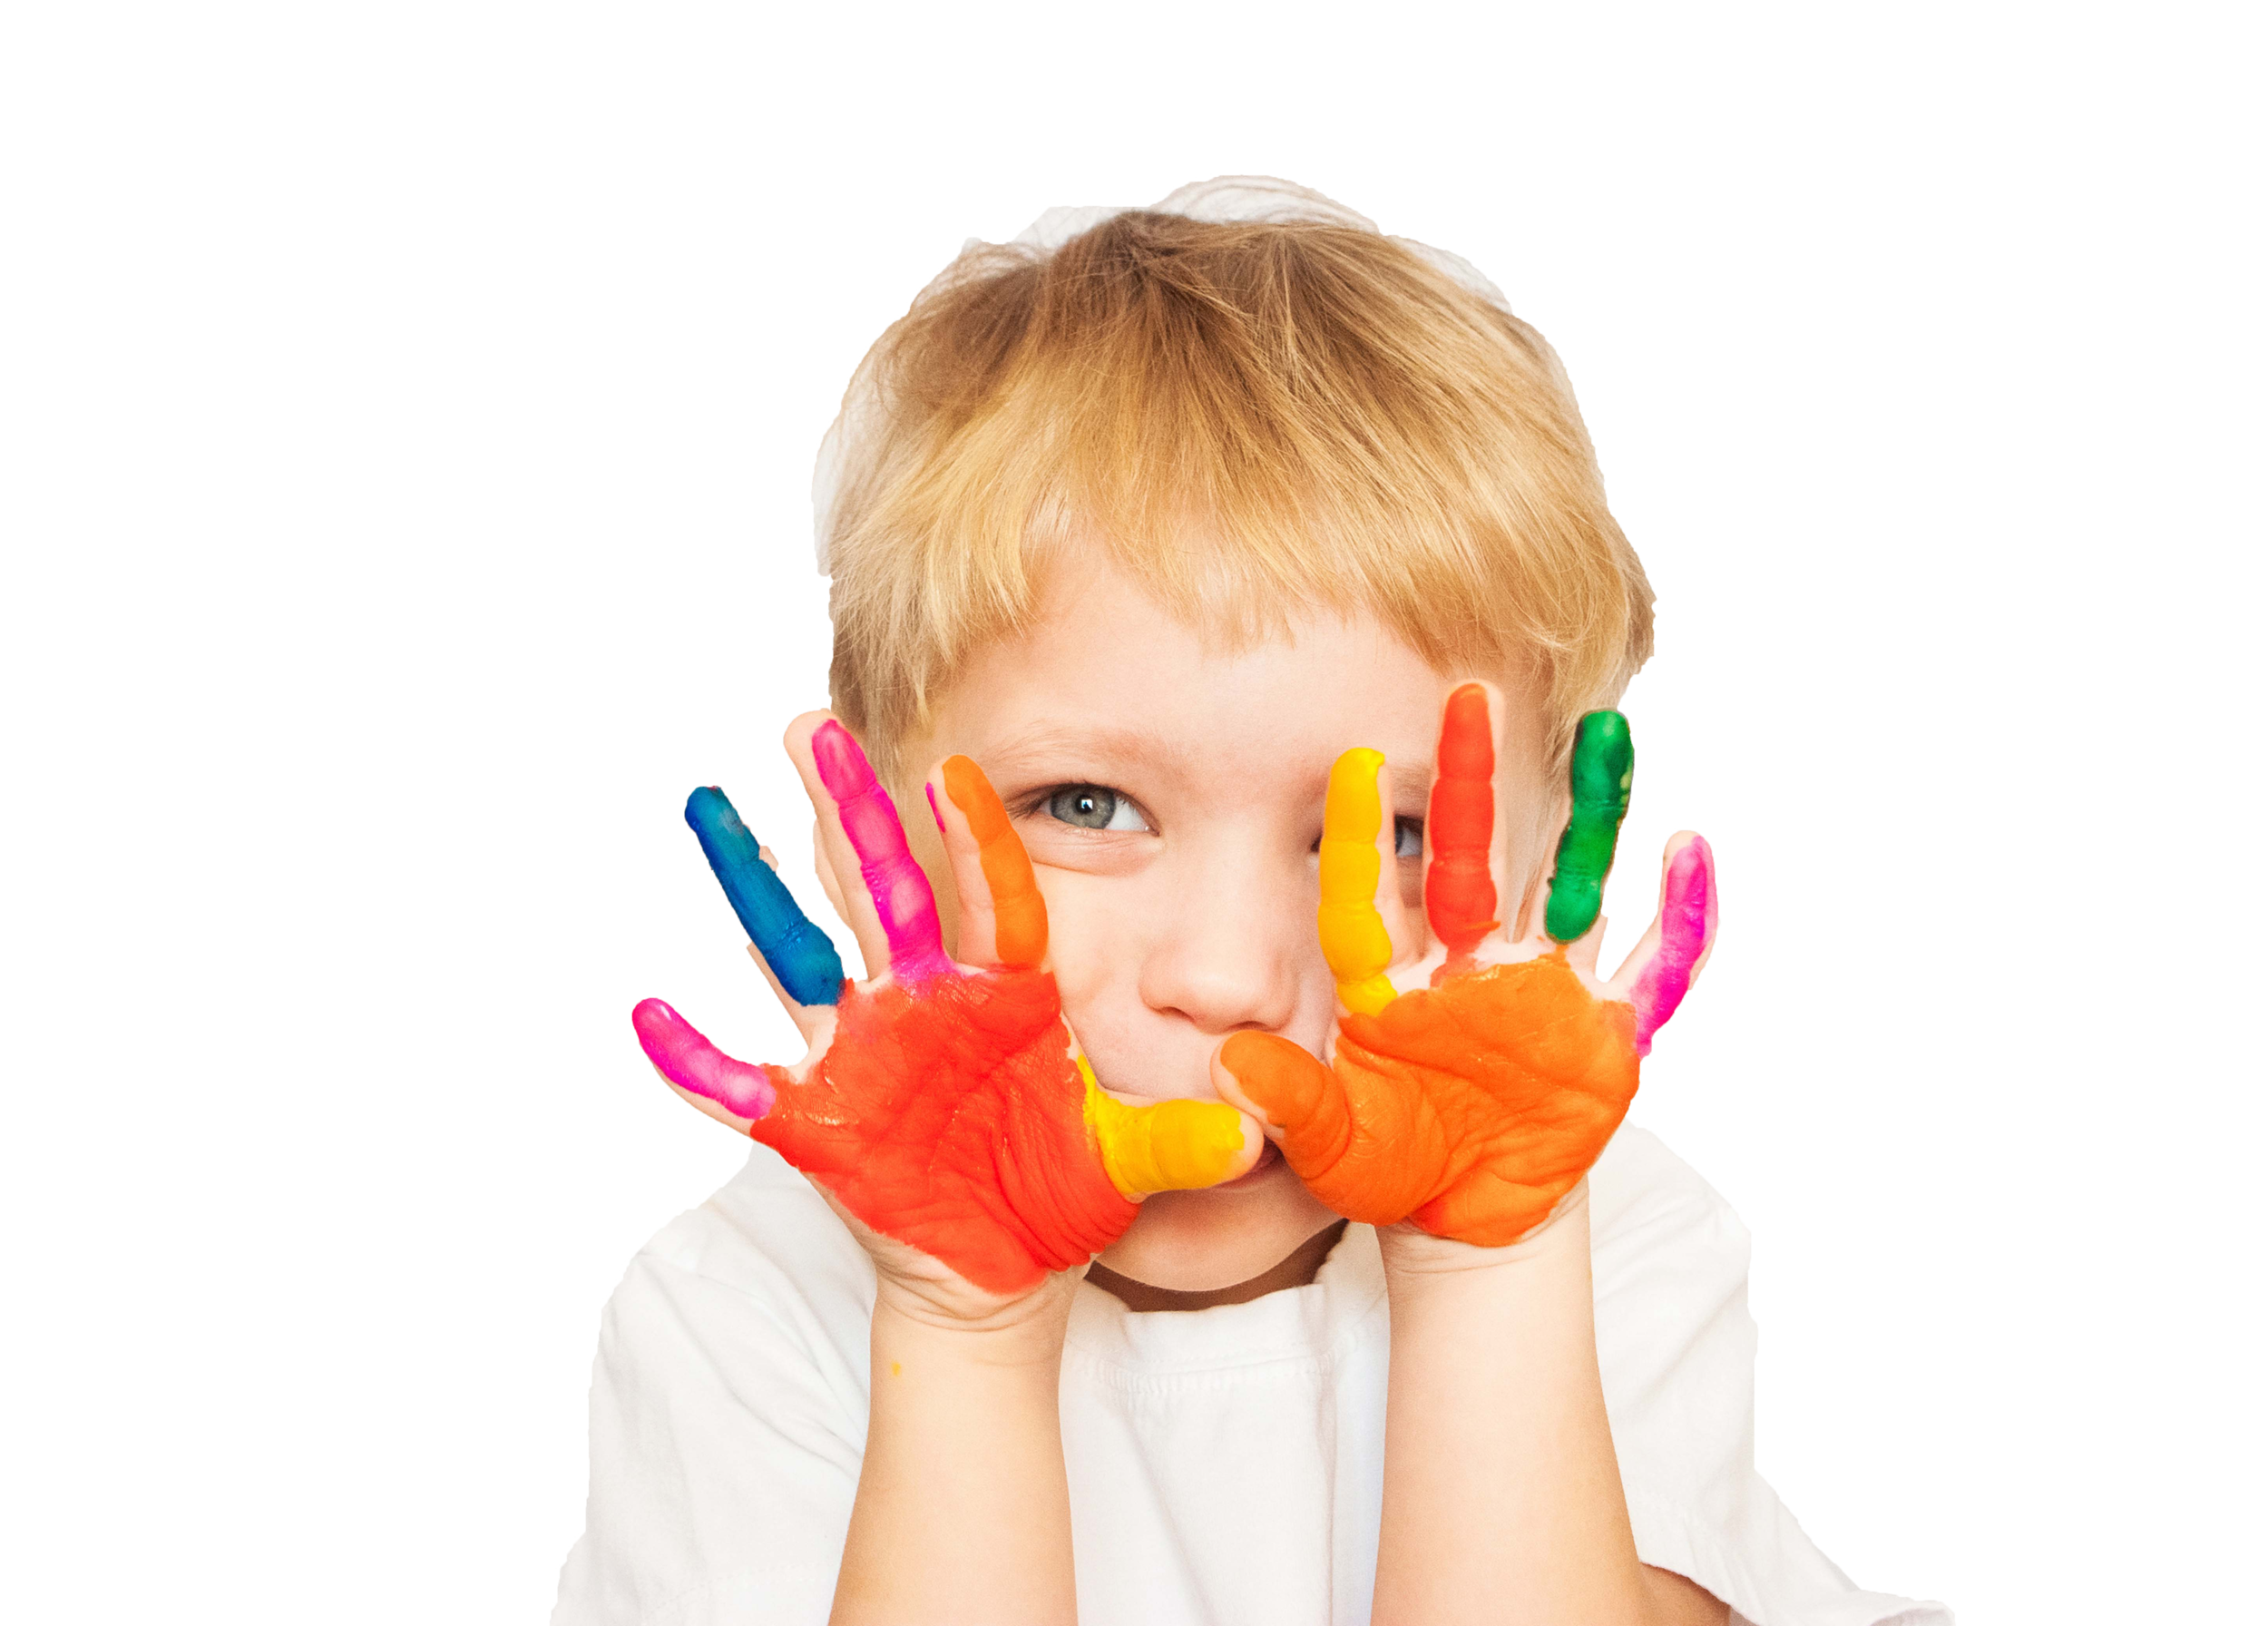 boy with finger paint.png